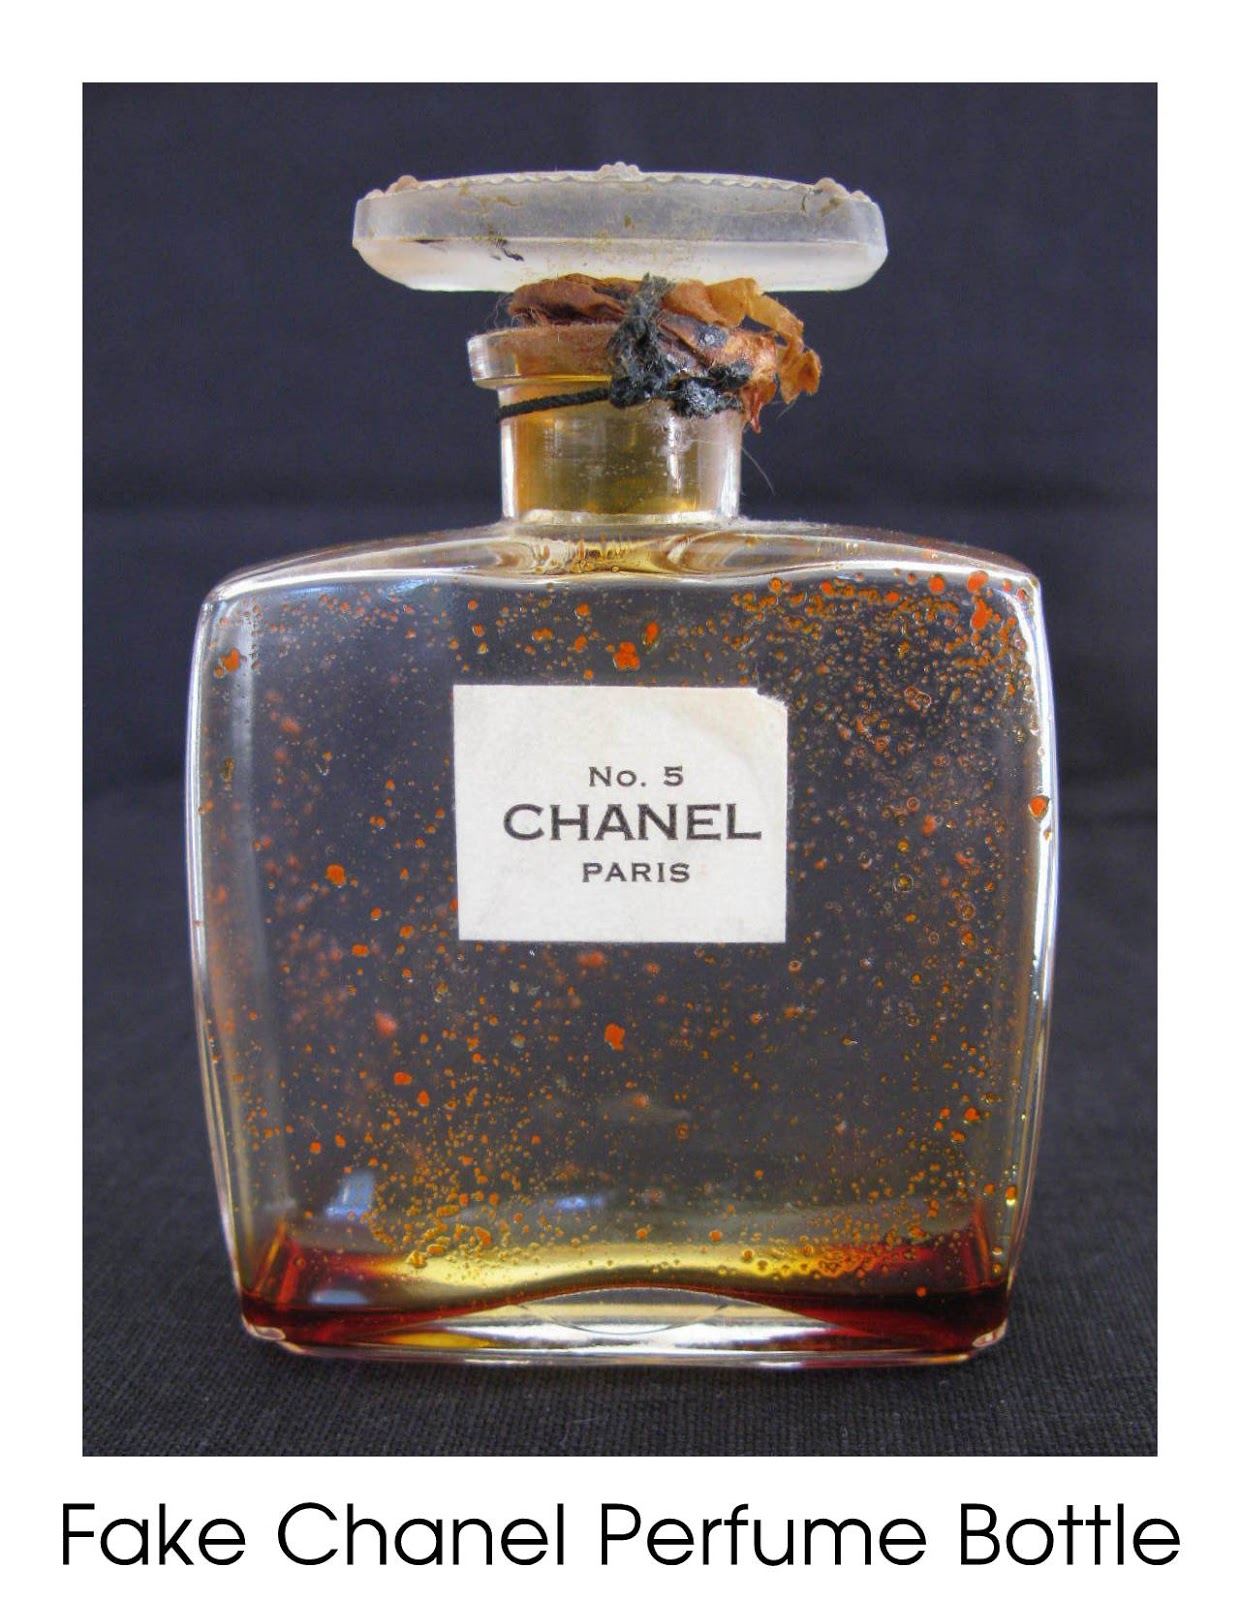 Dating vintage chanel perfume bottles - WHW